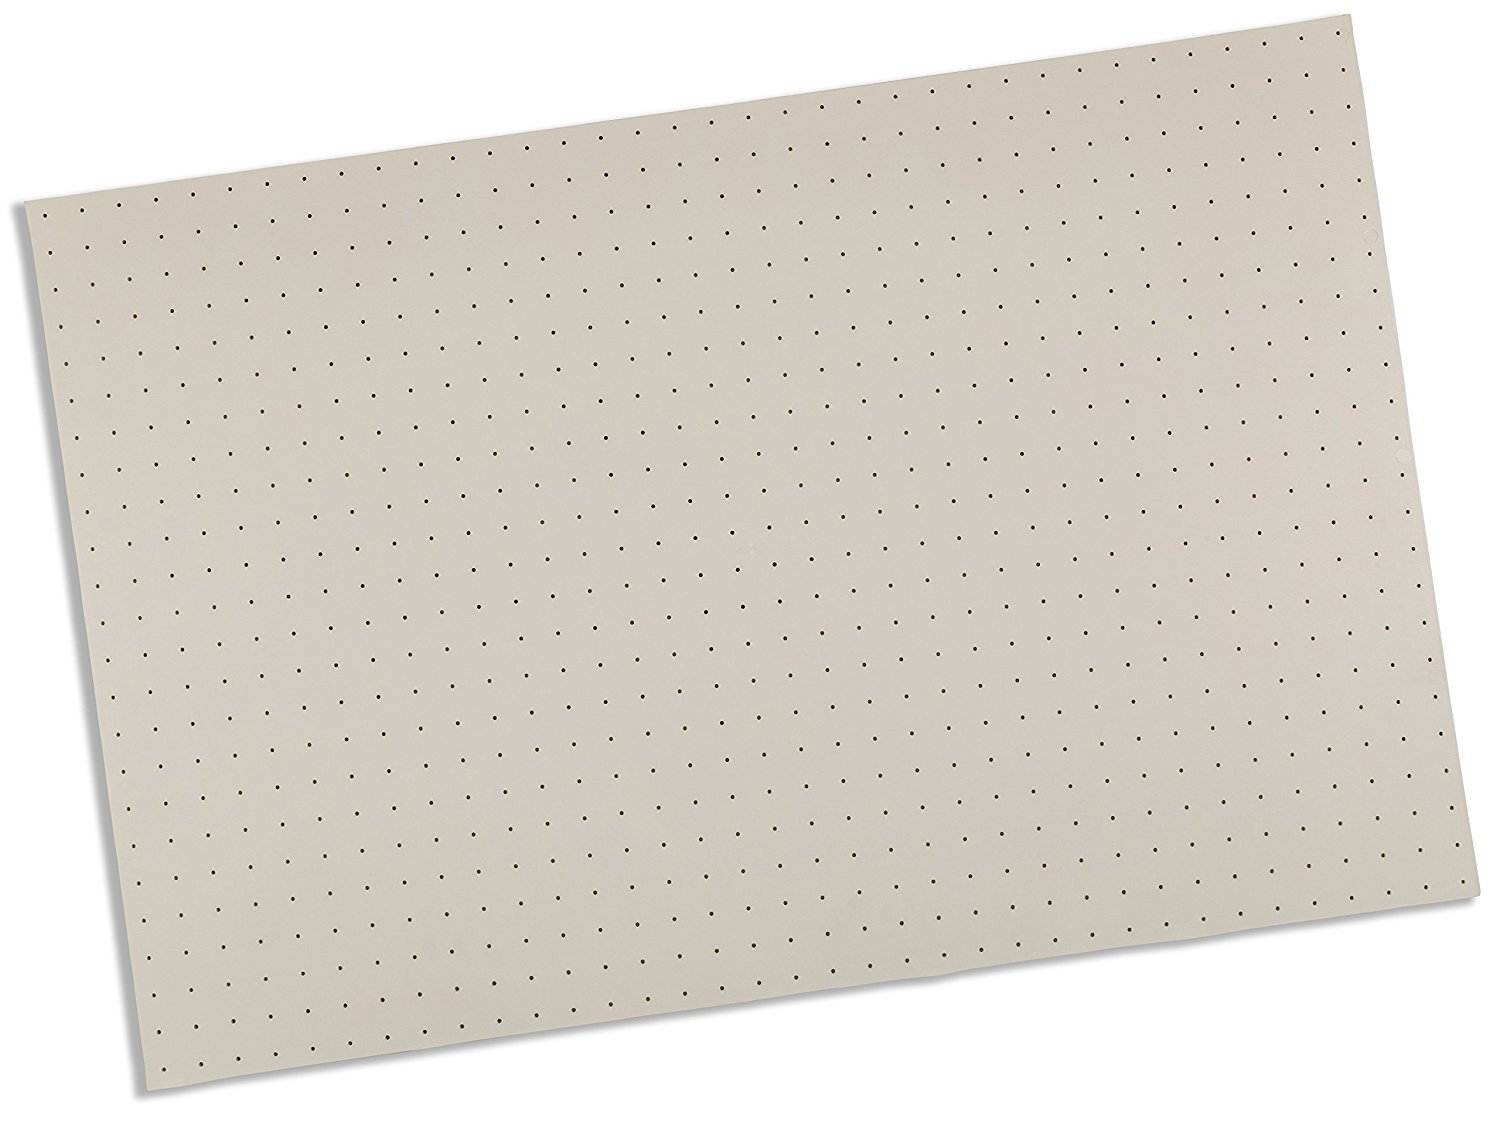 Rolyan Splinting Material Sheets, Polyform, White, 1/8'' x 18'' x 24'', 1% Perforated, 4 Sheets